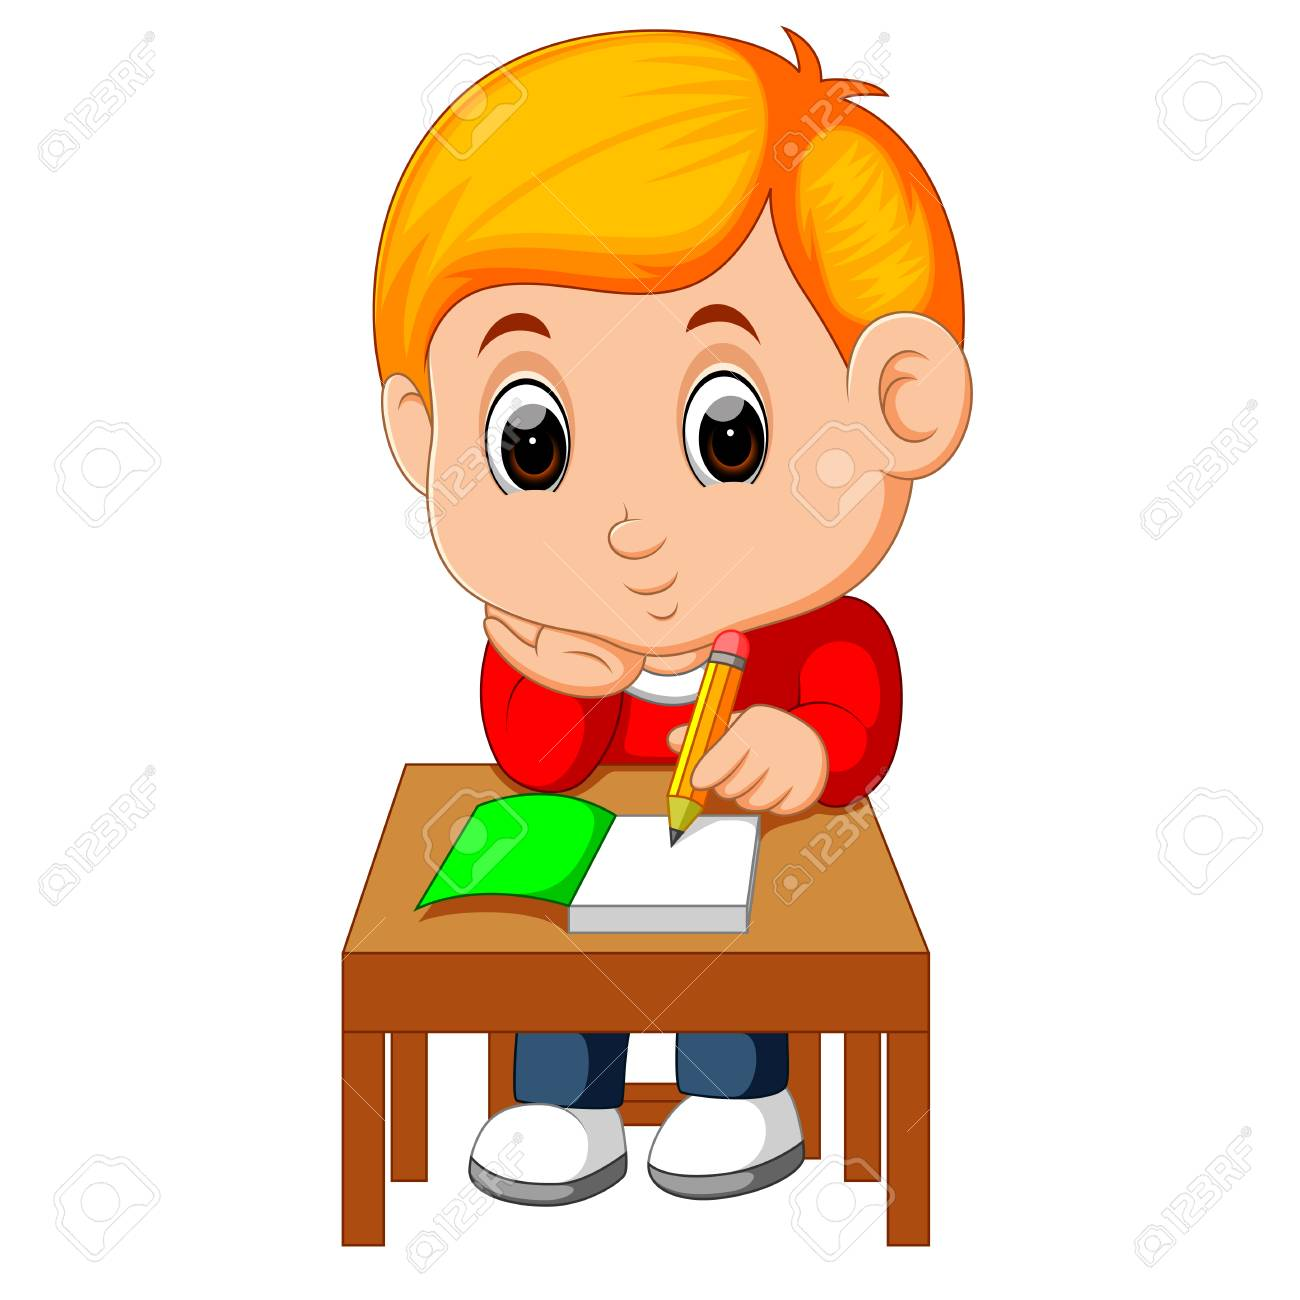 Cute boy writing and thinking be happy.